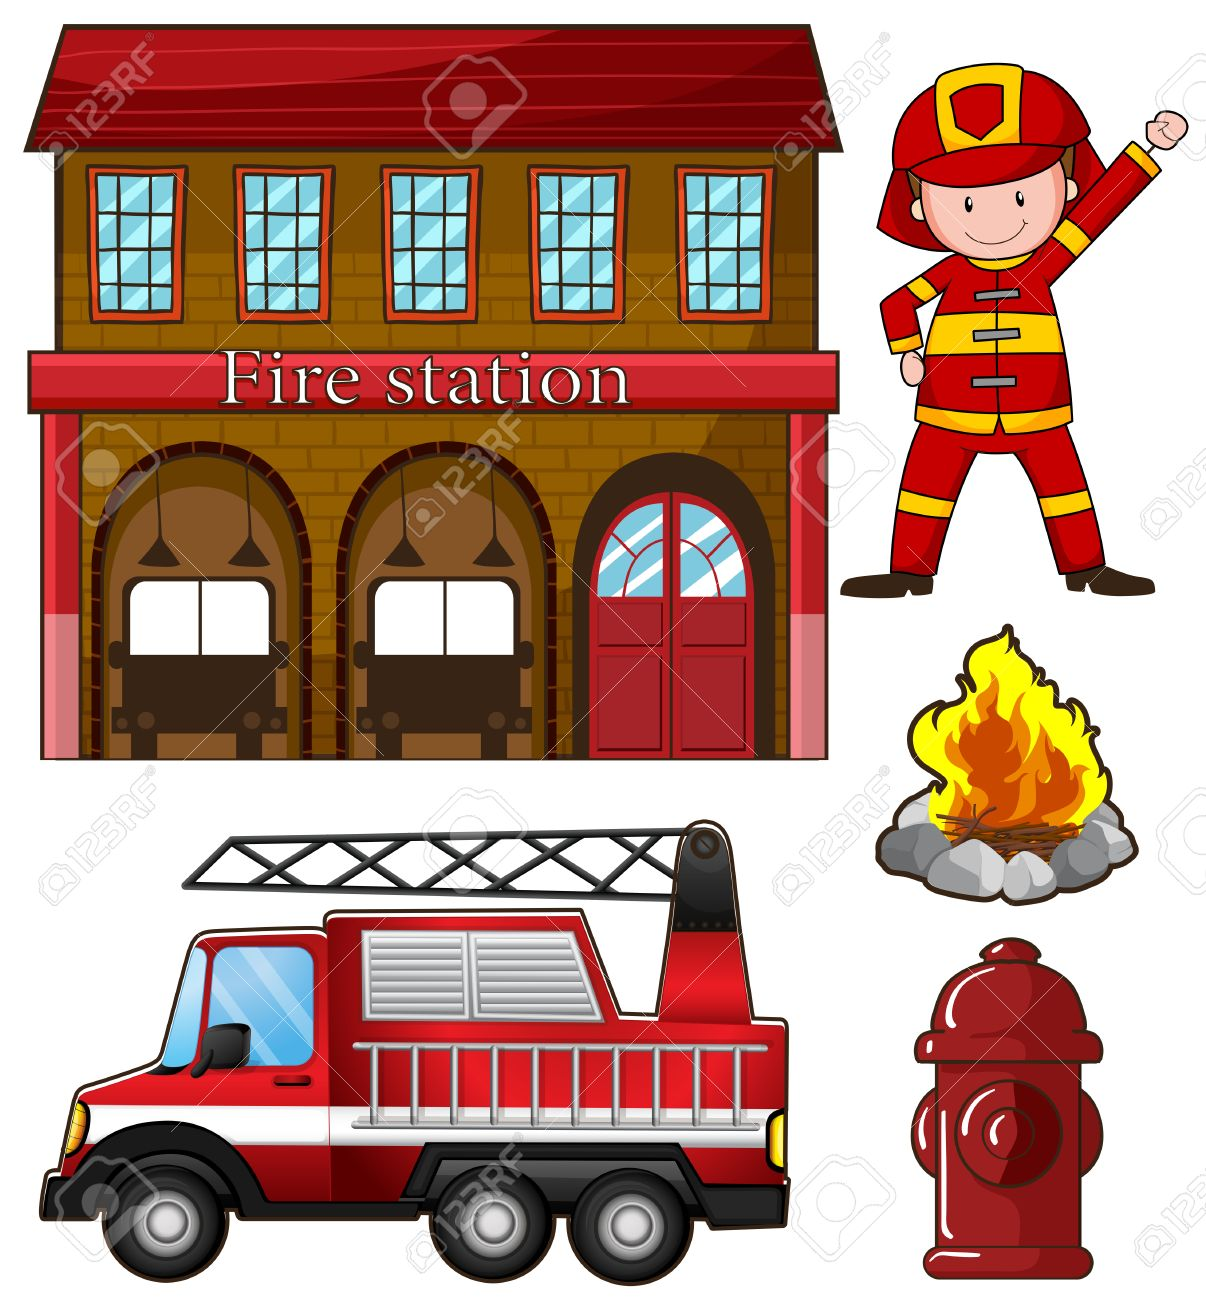 fireman and fire station illustration royalty free cliparts vectors rh 123rf com fire brigade clipart black and white fire station clipart png